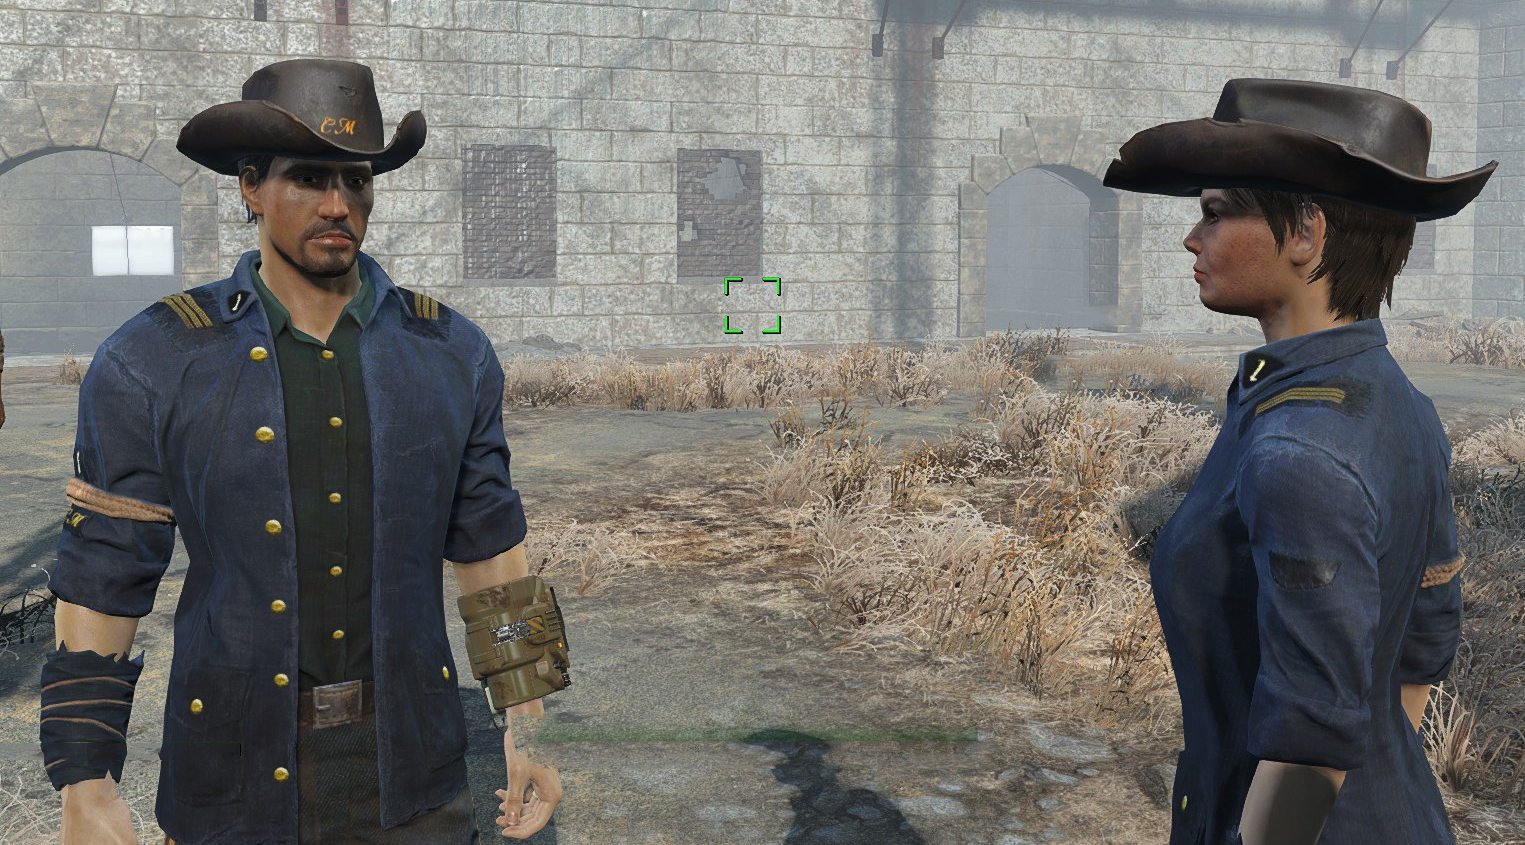 Better Companions All In One at Fallout 4 Nexus Mods 3870718